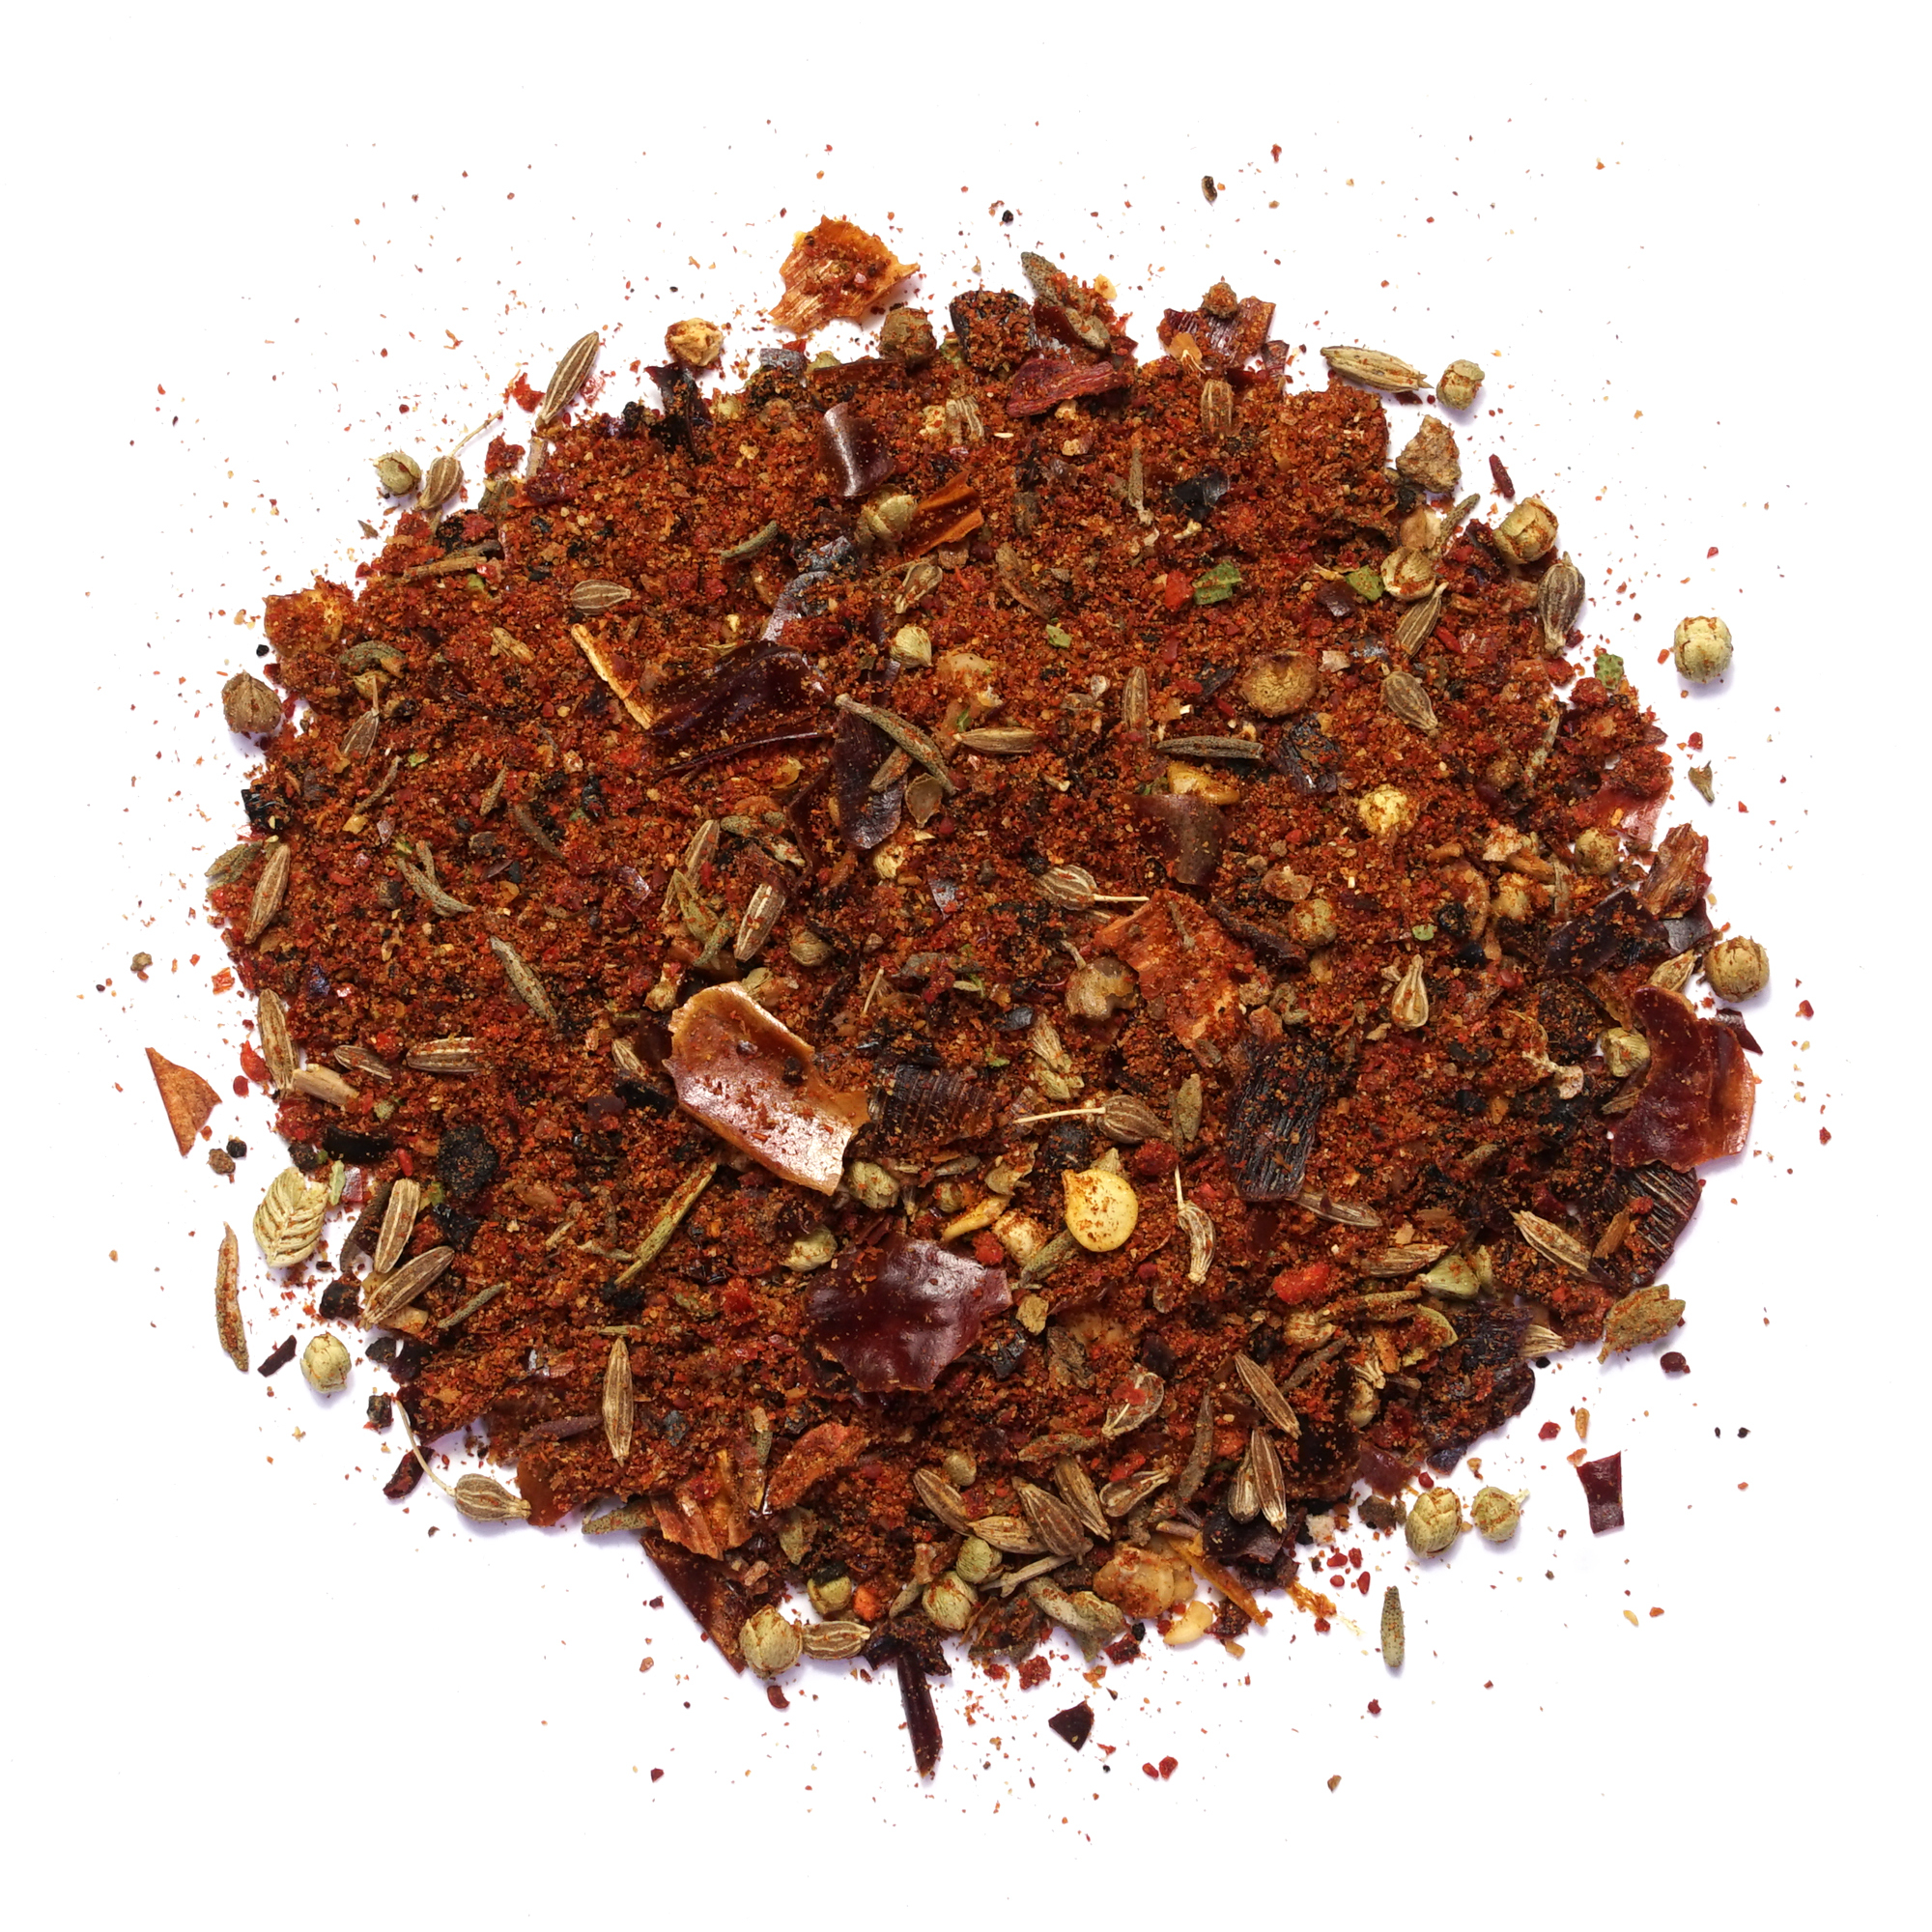 Chili spice blend - Hot and smoky